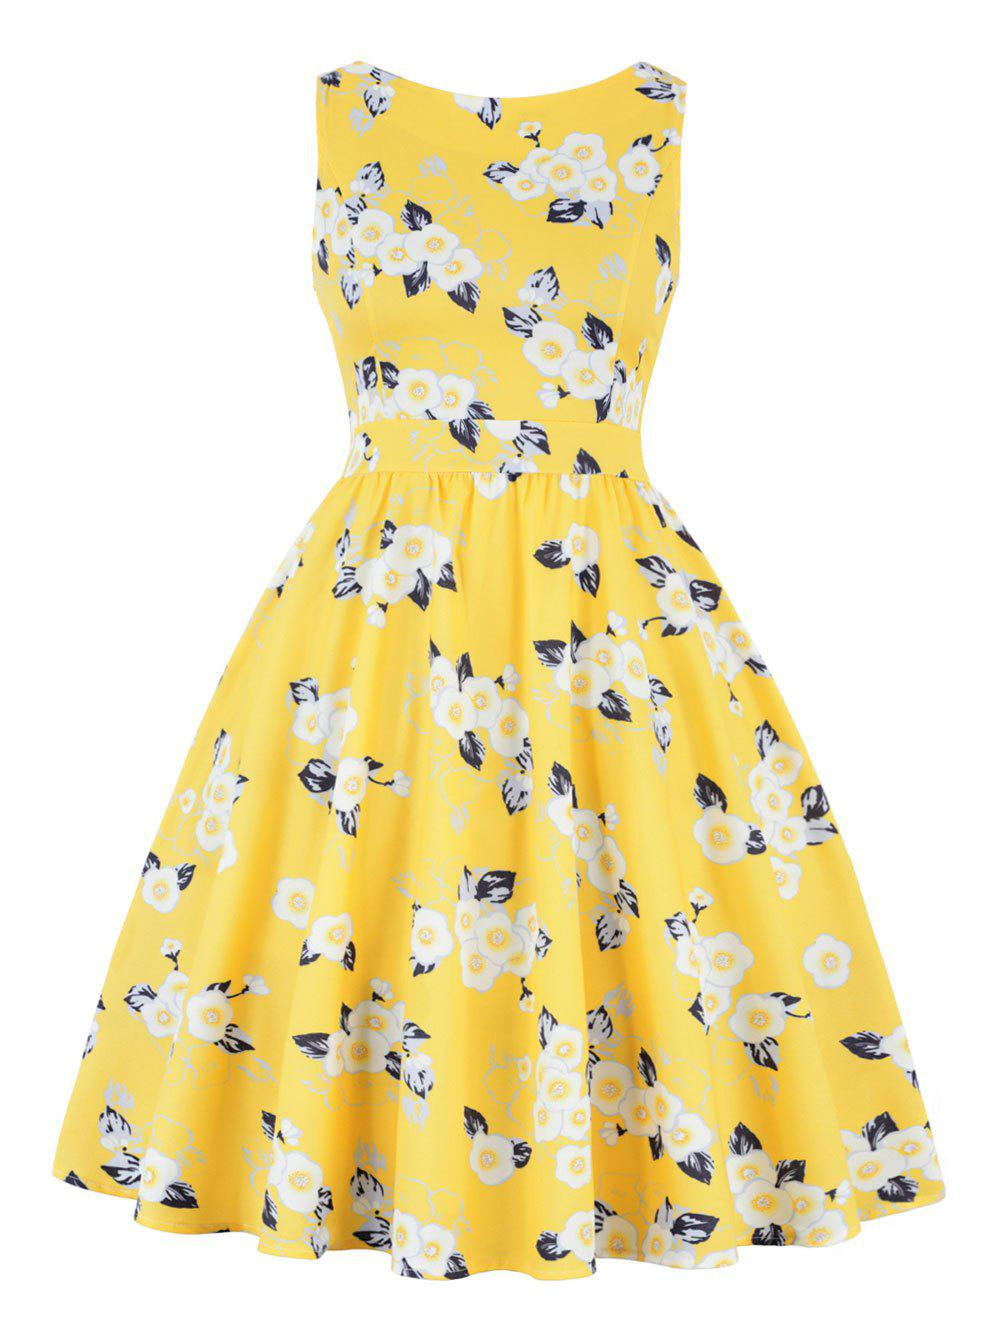 Print High Waist A Line Vintage DressWOMEN<br><br>Size: S; Color: YELLOW; Style: Vintage; Material: Polyester,Spandex; Silhouette: A-Line; Dresses Length: Knee-Length; Neckline: Round Collar; Sleeve Length: Sleeveless; Pattern Type: Floral; With Belt: No; Season: Fall,Spring; Weight: 0.4200kg; Package Contents: 1 x Dress;